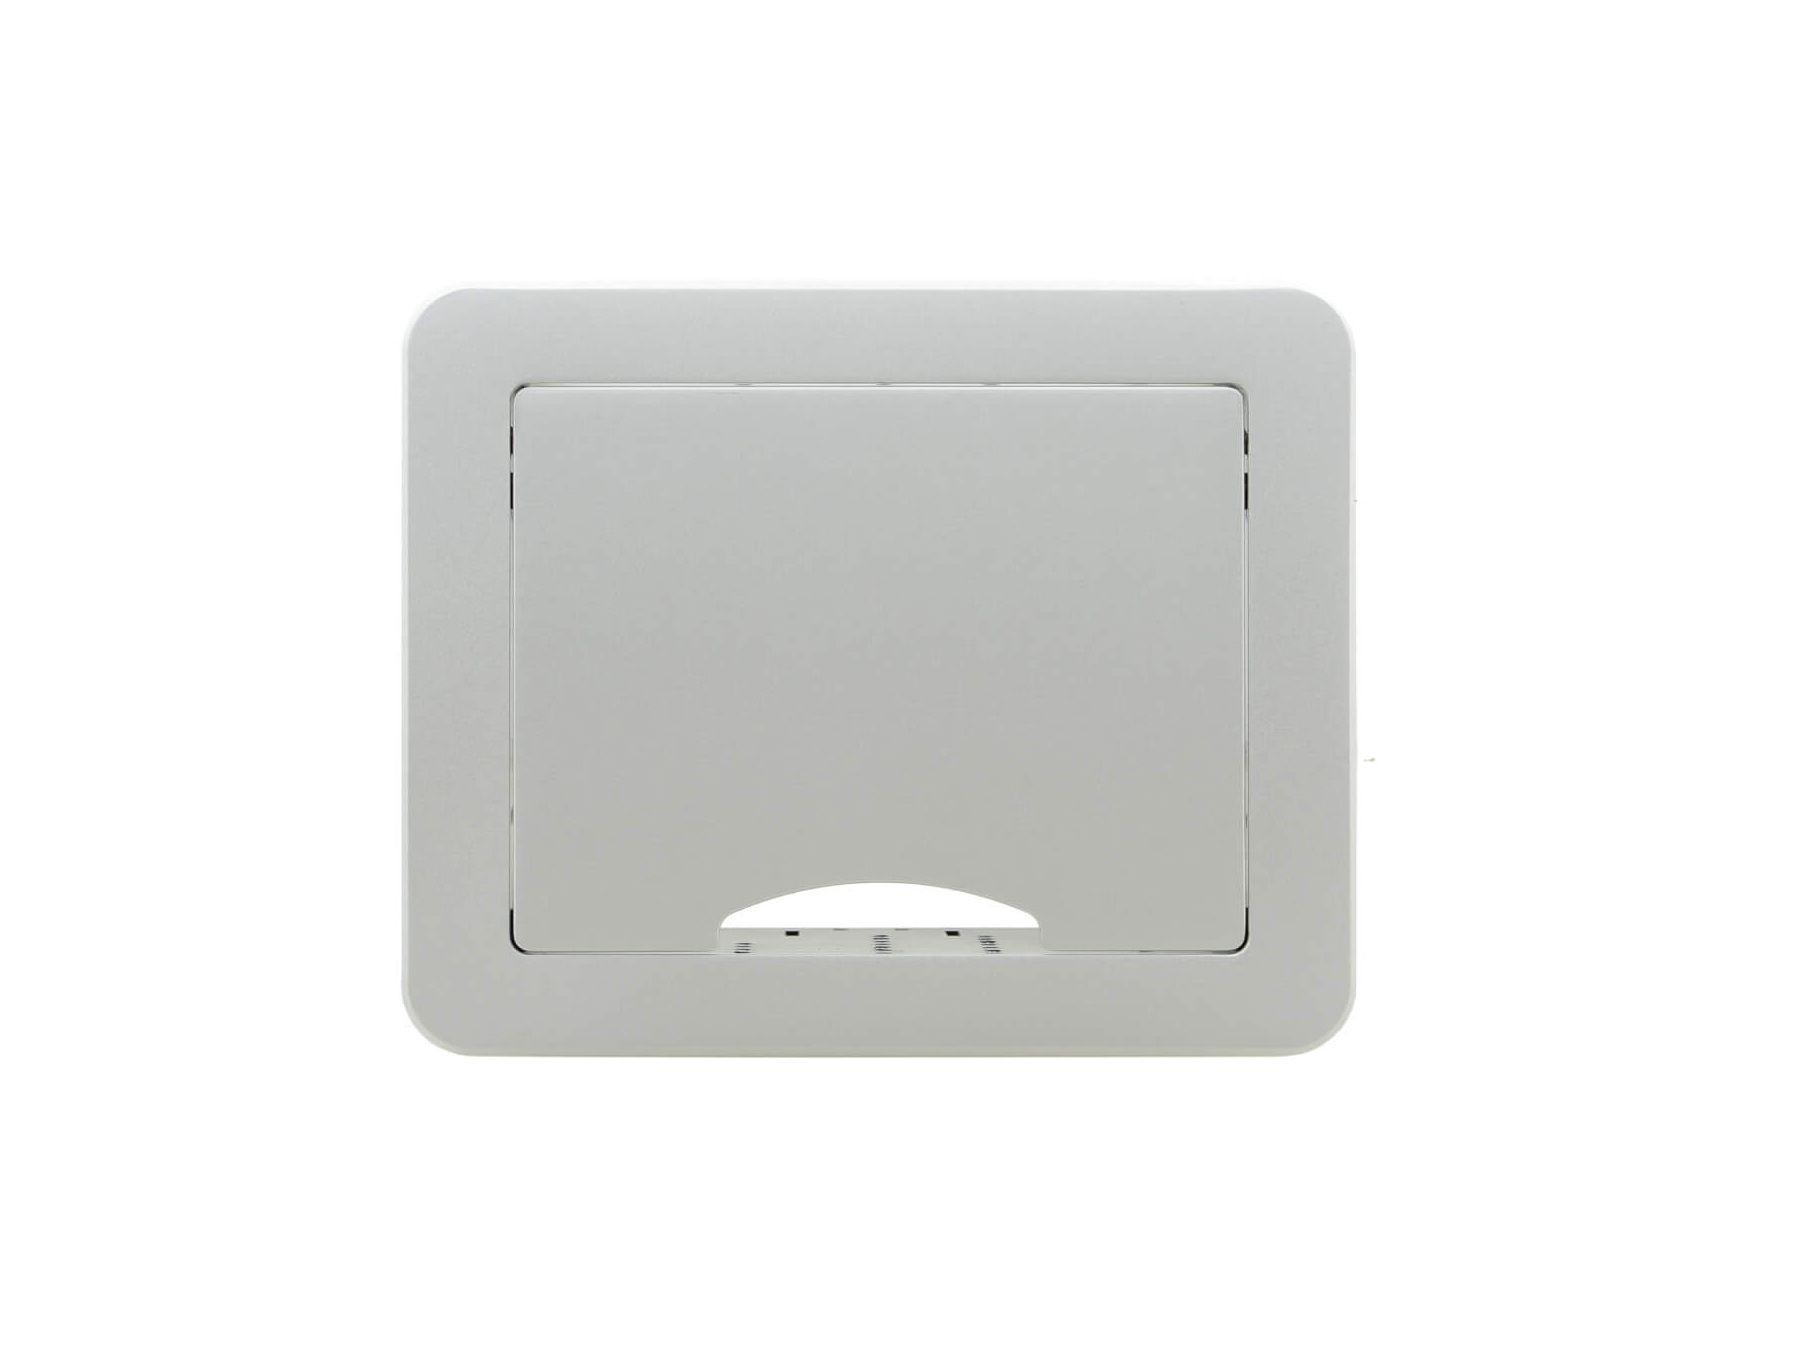 TBUS-1N(BC) Table Mount Modular Multi-Connection Solution/Retractable Lid/Silver Sand Aluminum Top by Kramer